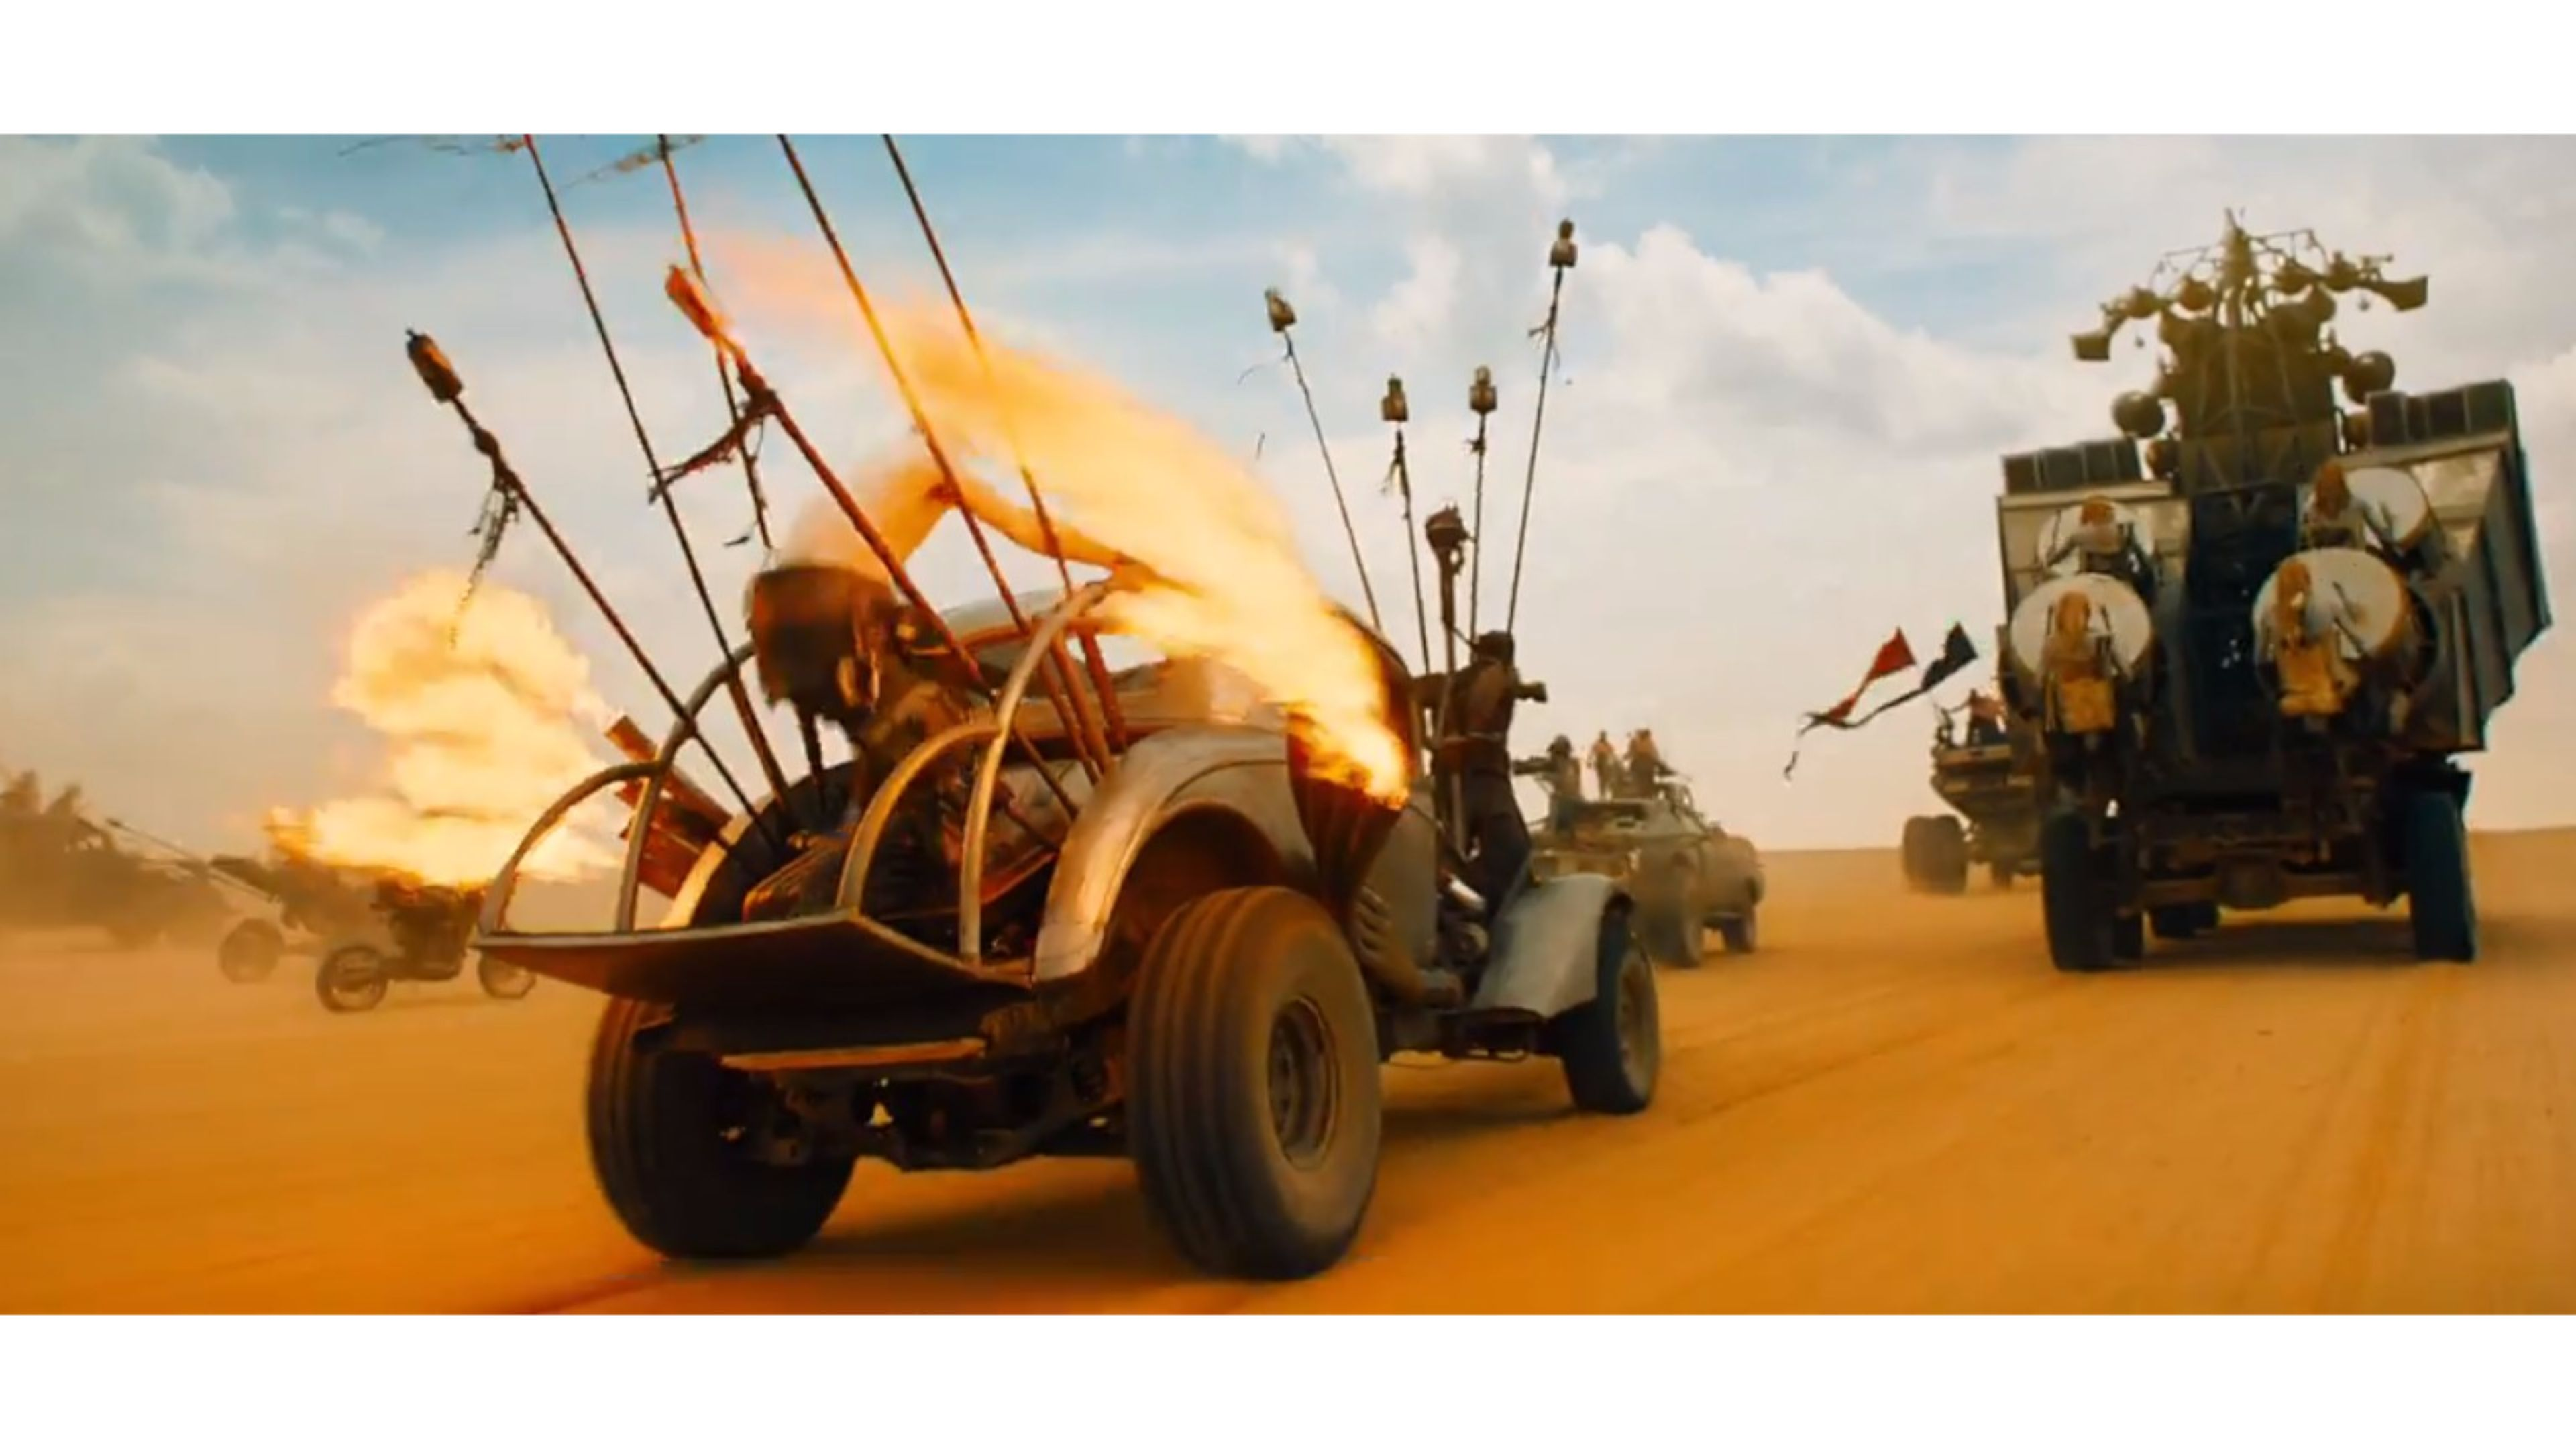 Unique Mad Max Fury Road wallpaper